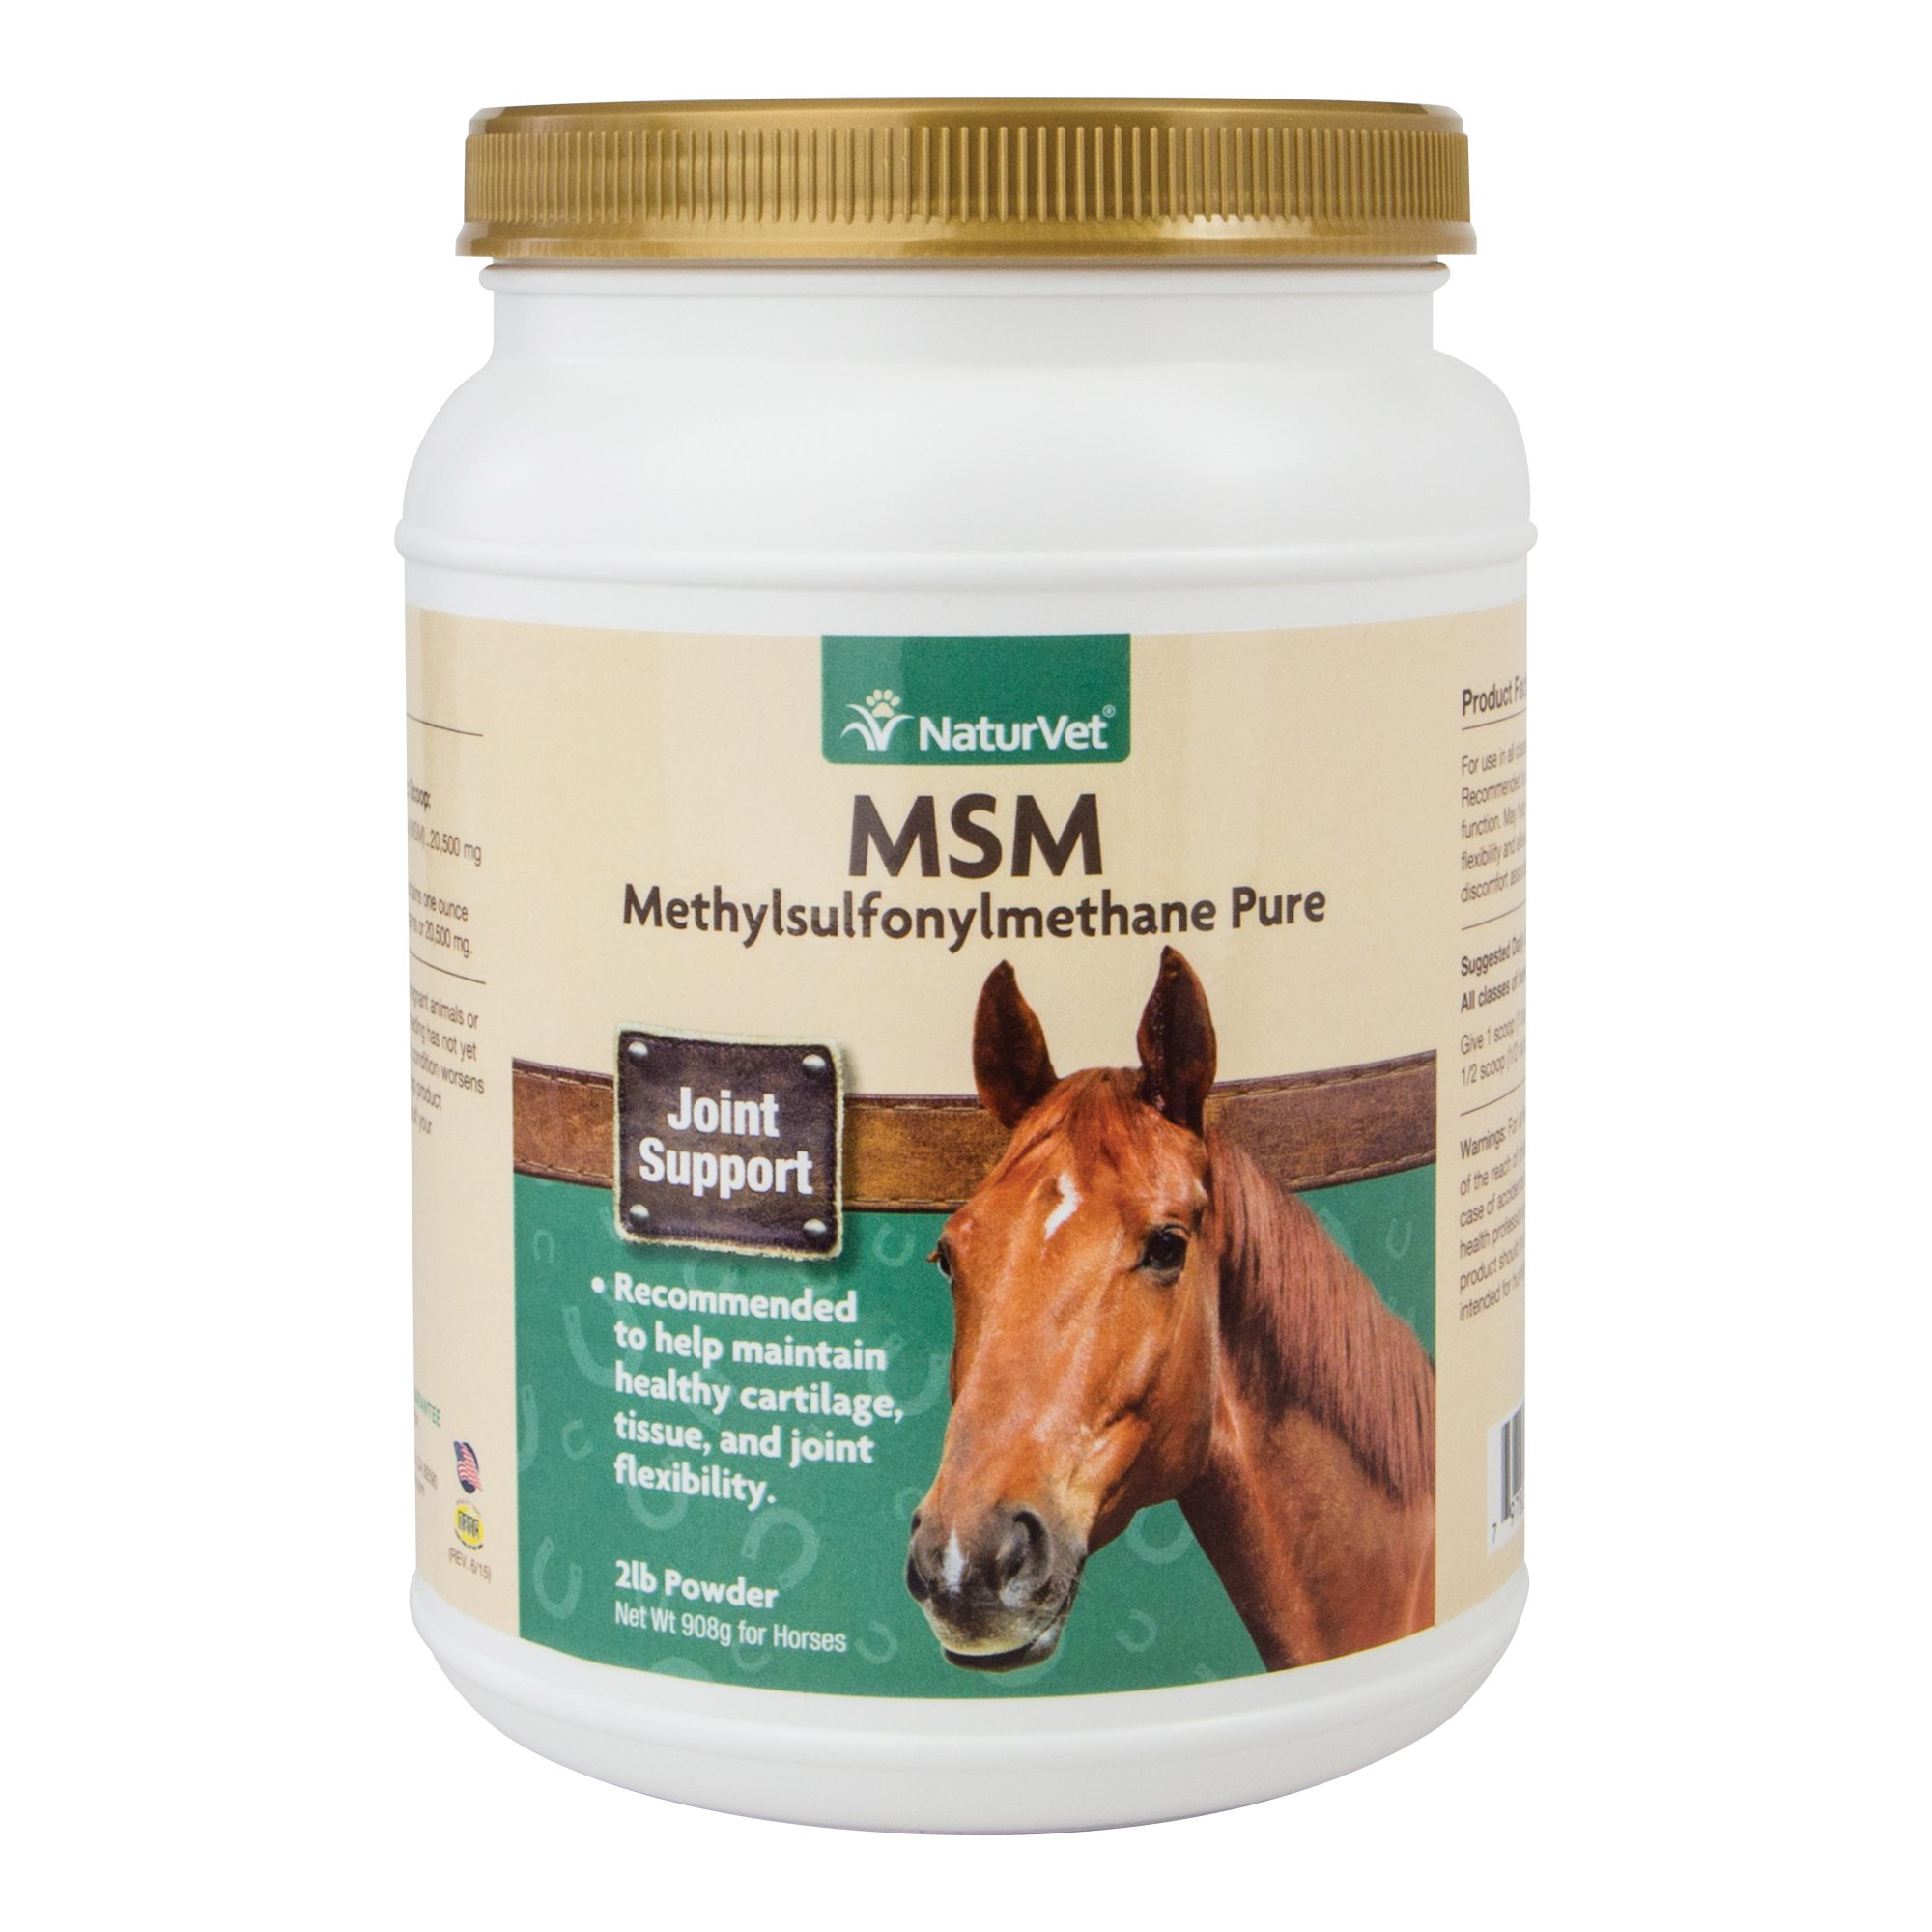 NaturVet MSM Methylsulfonylmethane Pure Joint Support for Horses, 2 lb Powder, Made in USA